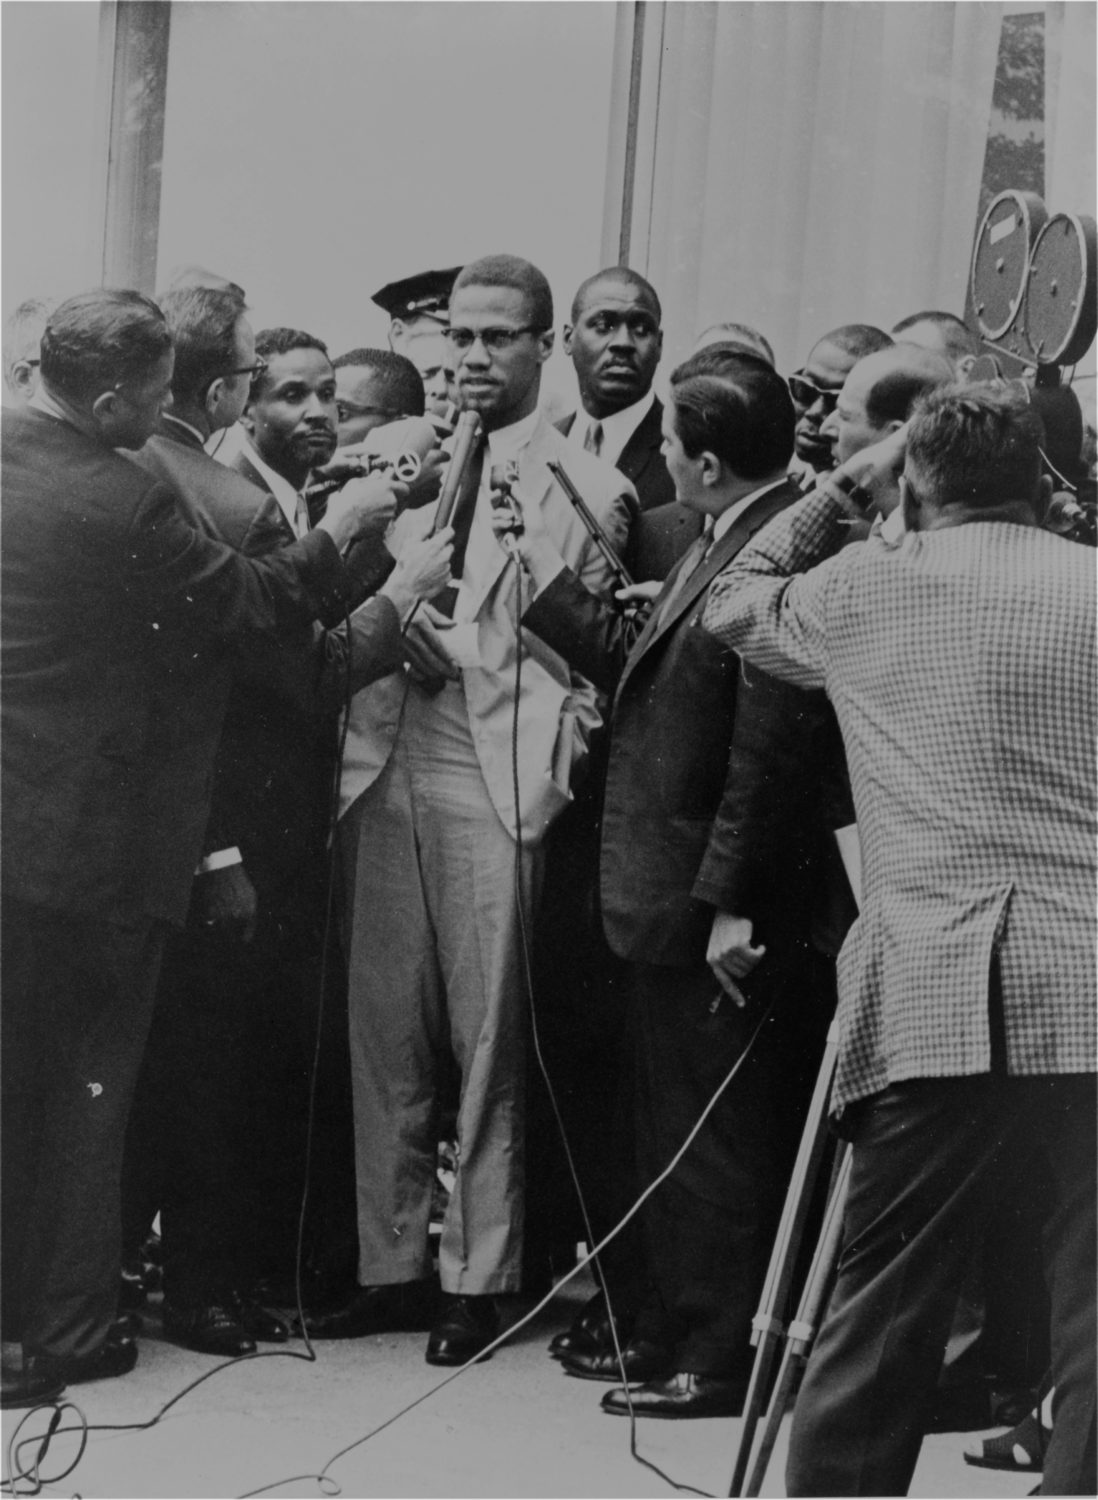 I-Am-Not-Your-Negro-Malcolm-X-announces-founding-of-Organization-of-Afro-American-Unity-062864, International Panel of Jurists to oversee Tribunal on US Human Rights Abuses Against Black, Brown and Indigenous Peoples, 22-25 October 2021, World News & Views